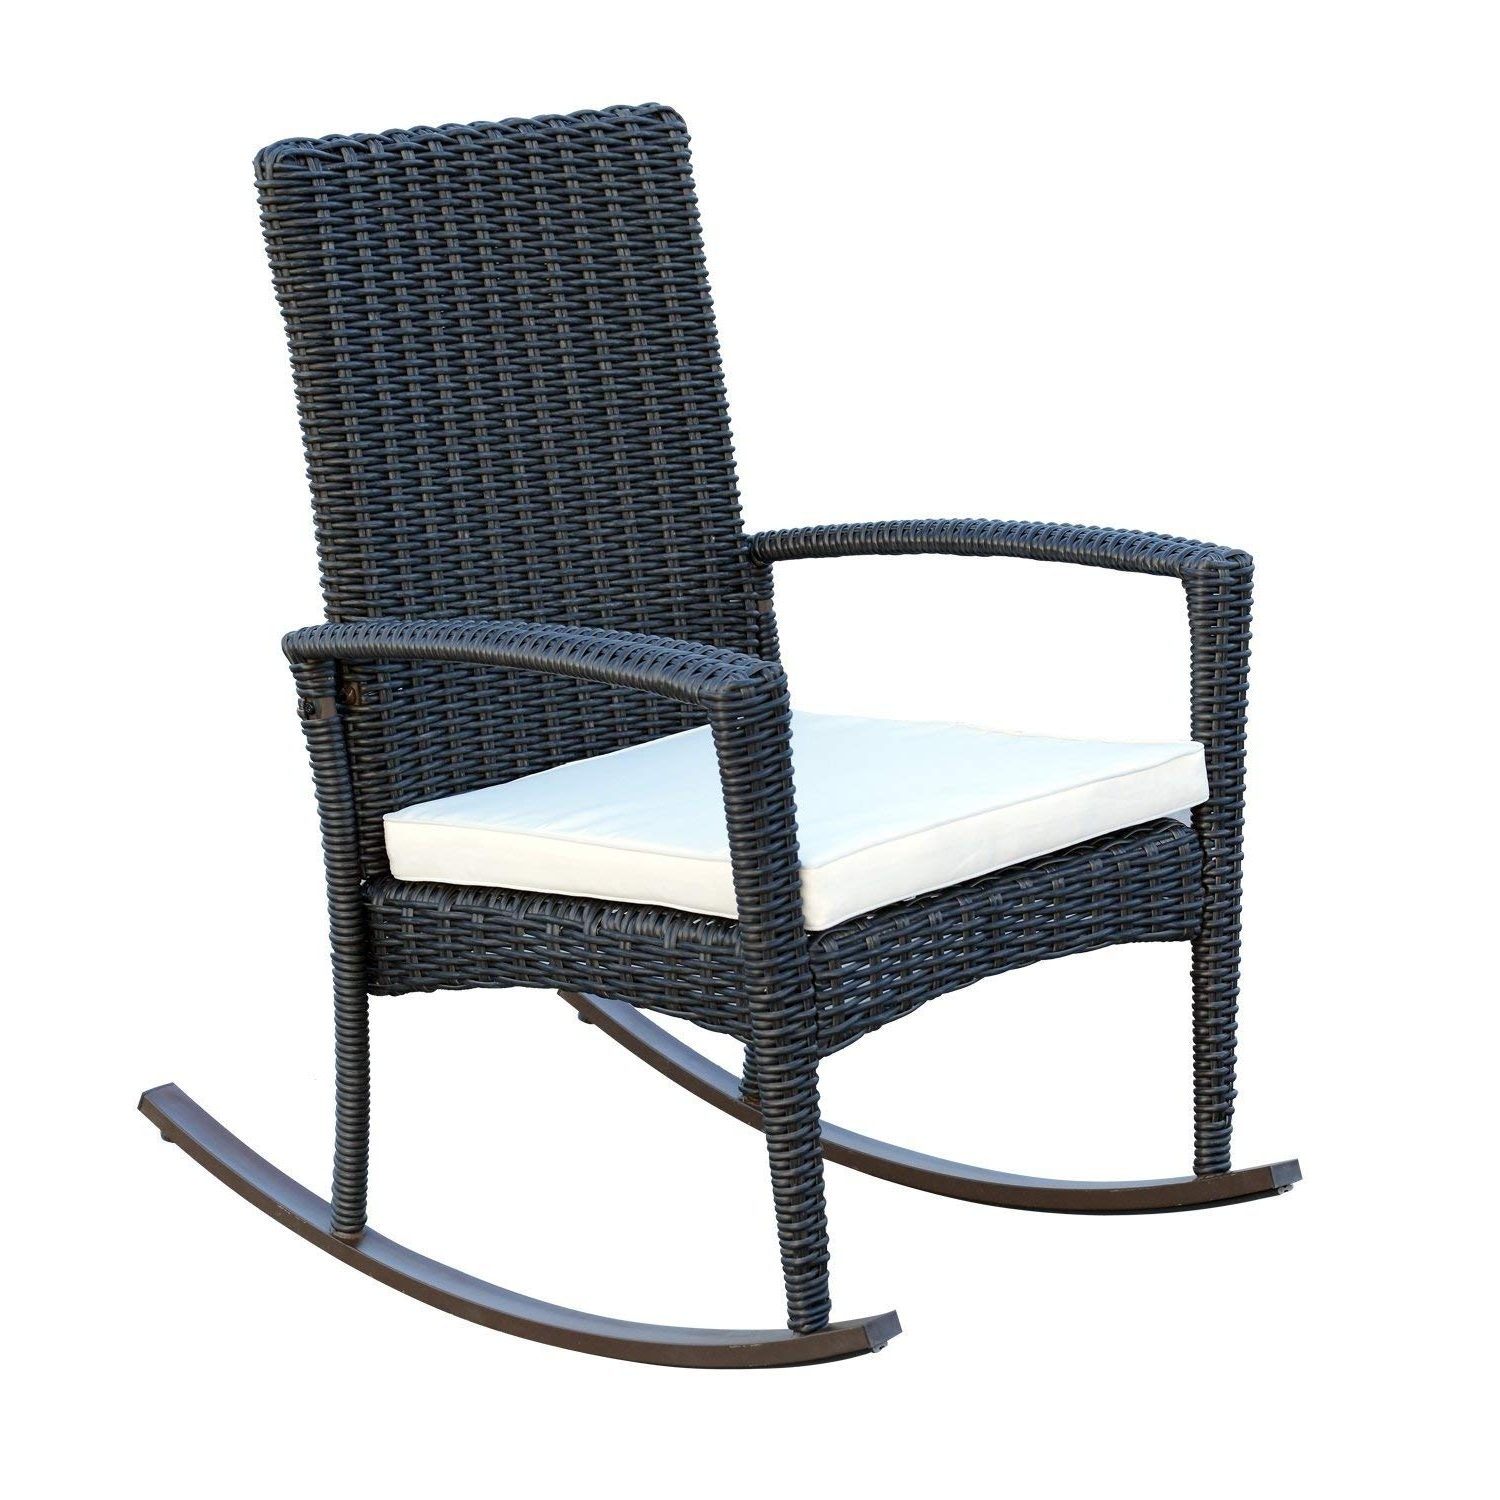 Amazon : Outsunny 3 Piece Outdoor Rocking Chair And Table Set Pertaining To Current Manhattan Patio Grey Rocking Chairs (View 6 of 15)